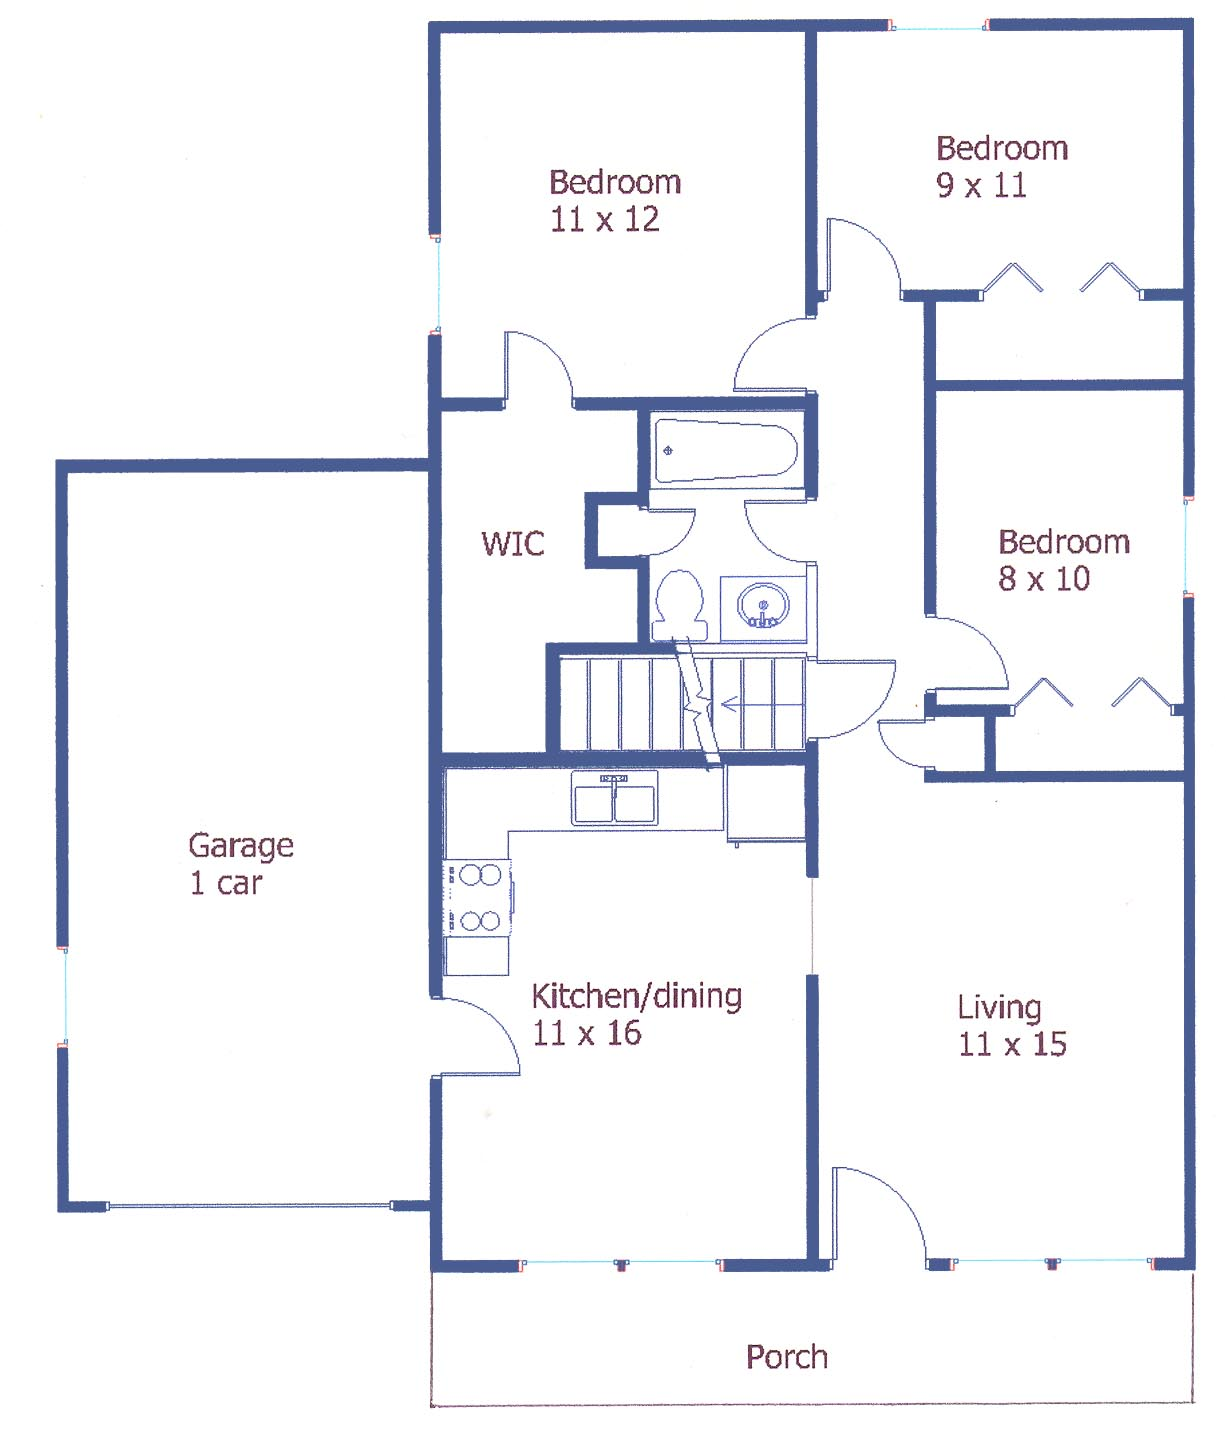 Floor plan of the 3-bedroom house for rent at 317 Ghaner Drive in State College, PA.